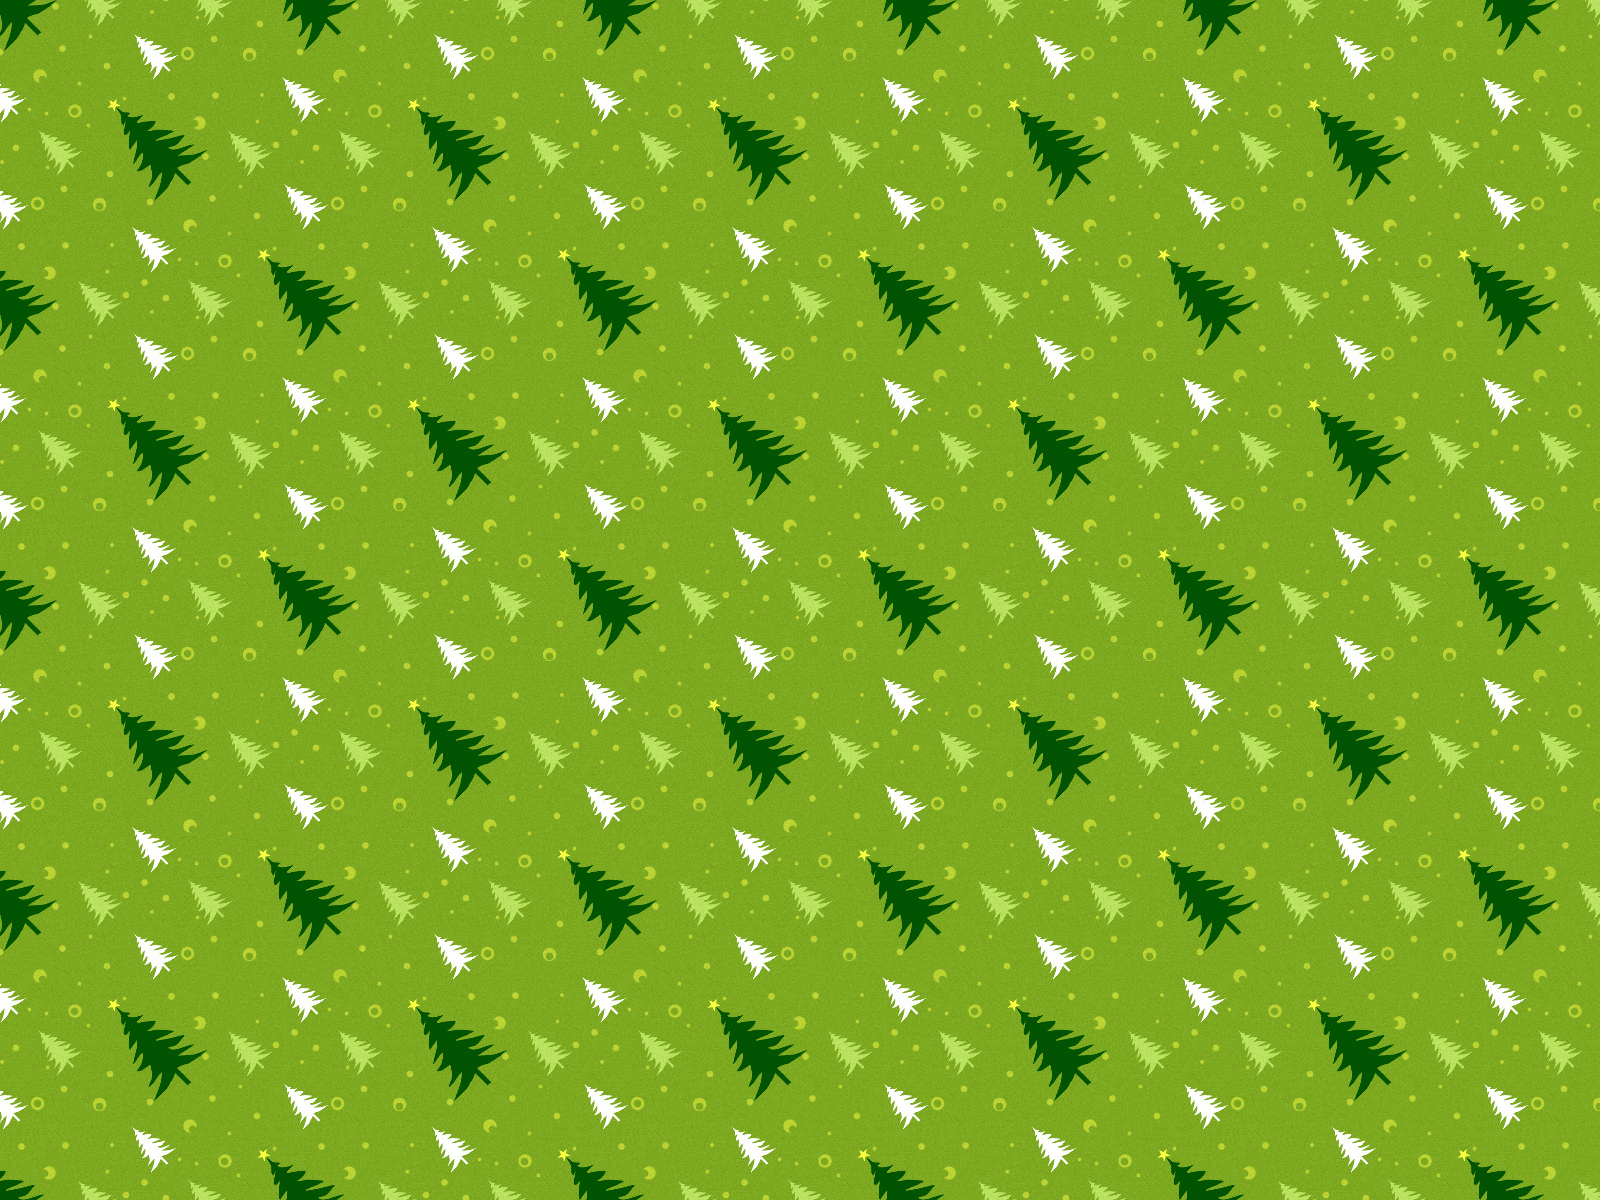 1600x1200 Free Christmas Backgrounds, Wallpapers & Photoshop Patterns